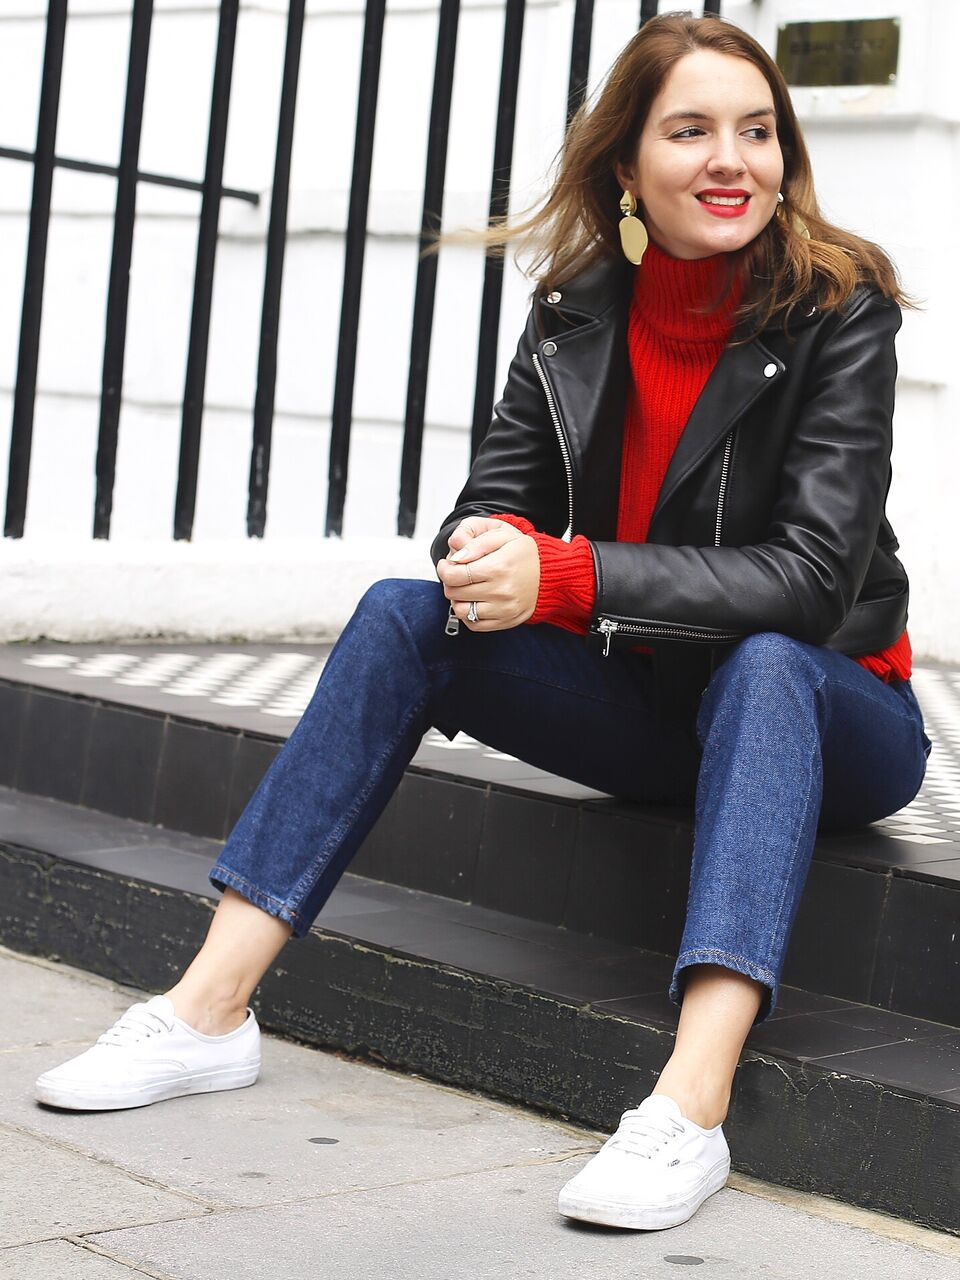 THE GROWN UP EDIT - Red Knit